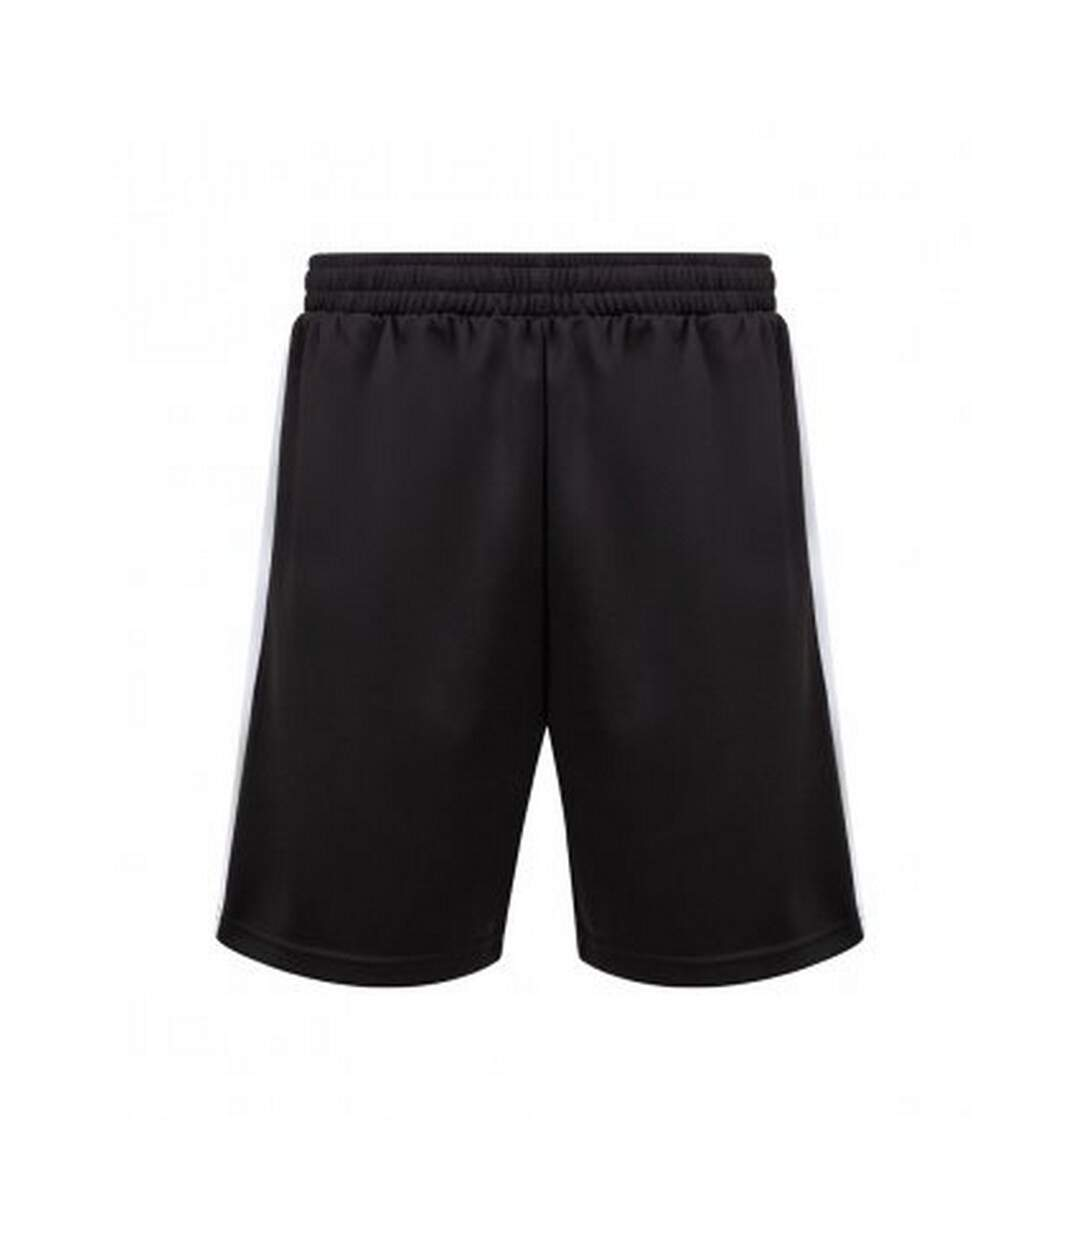 Finden and Hales Mens Knitted Shorts (Black/White) - UTPC4028